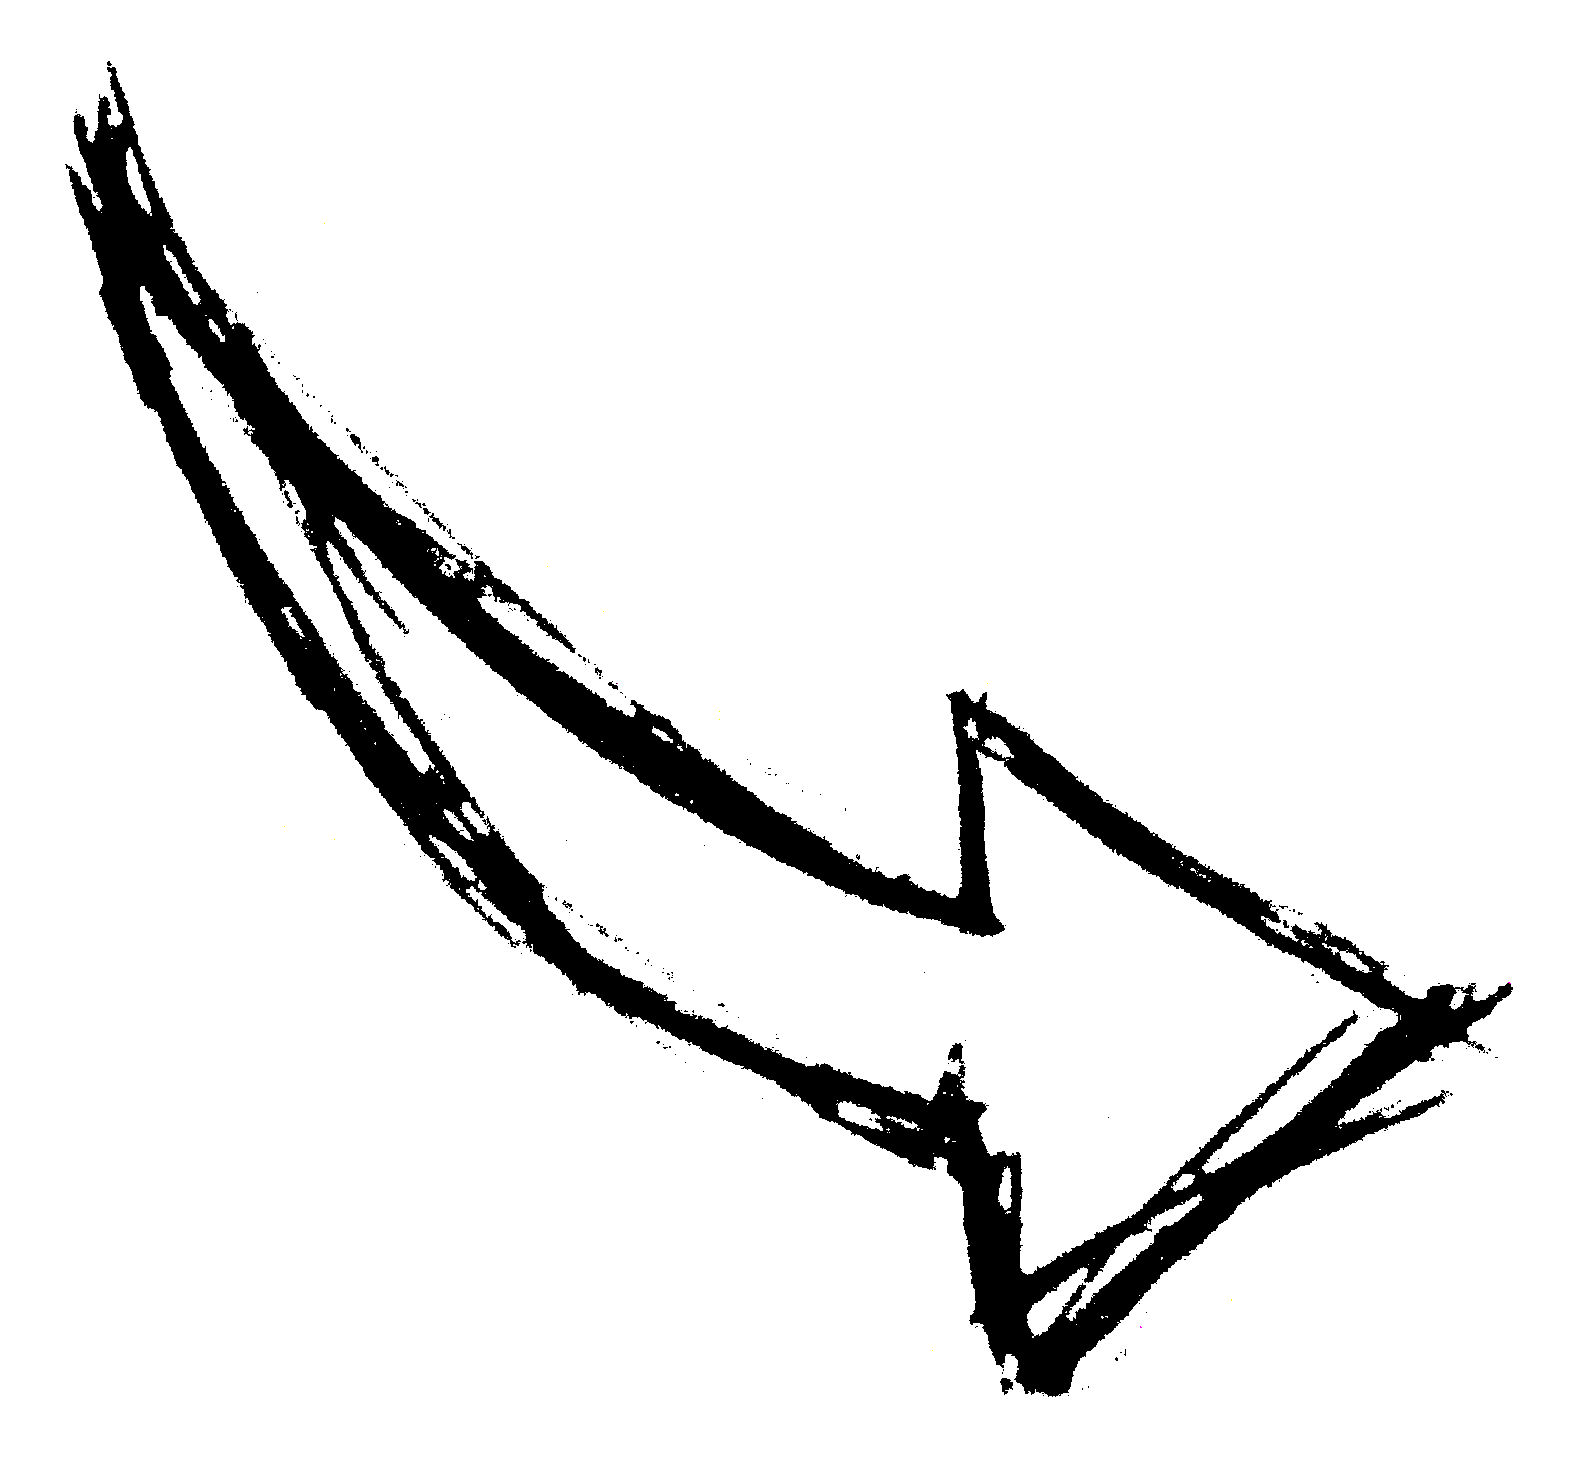 Drawn arrow pen Hand com 1 PNG Transparent